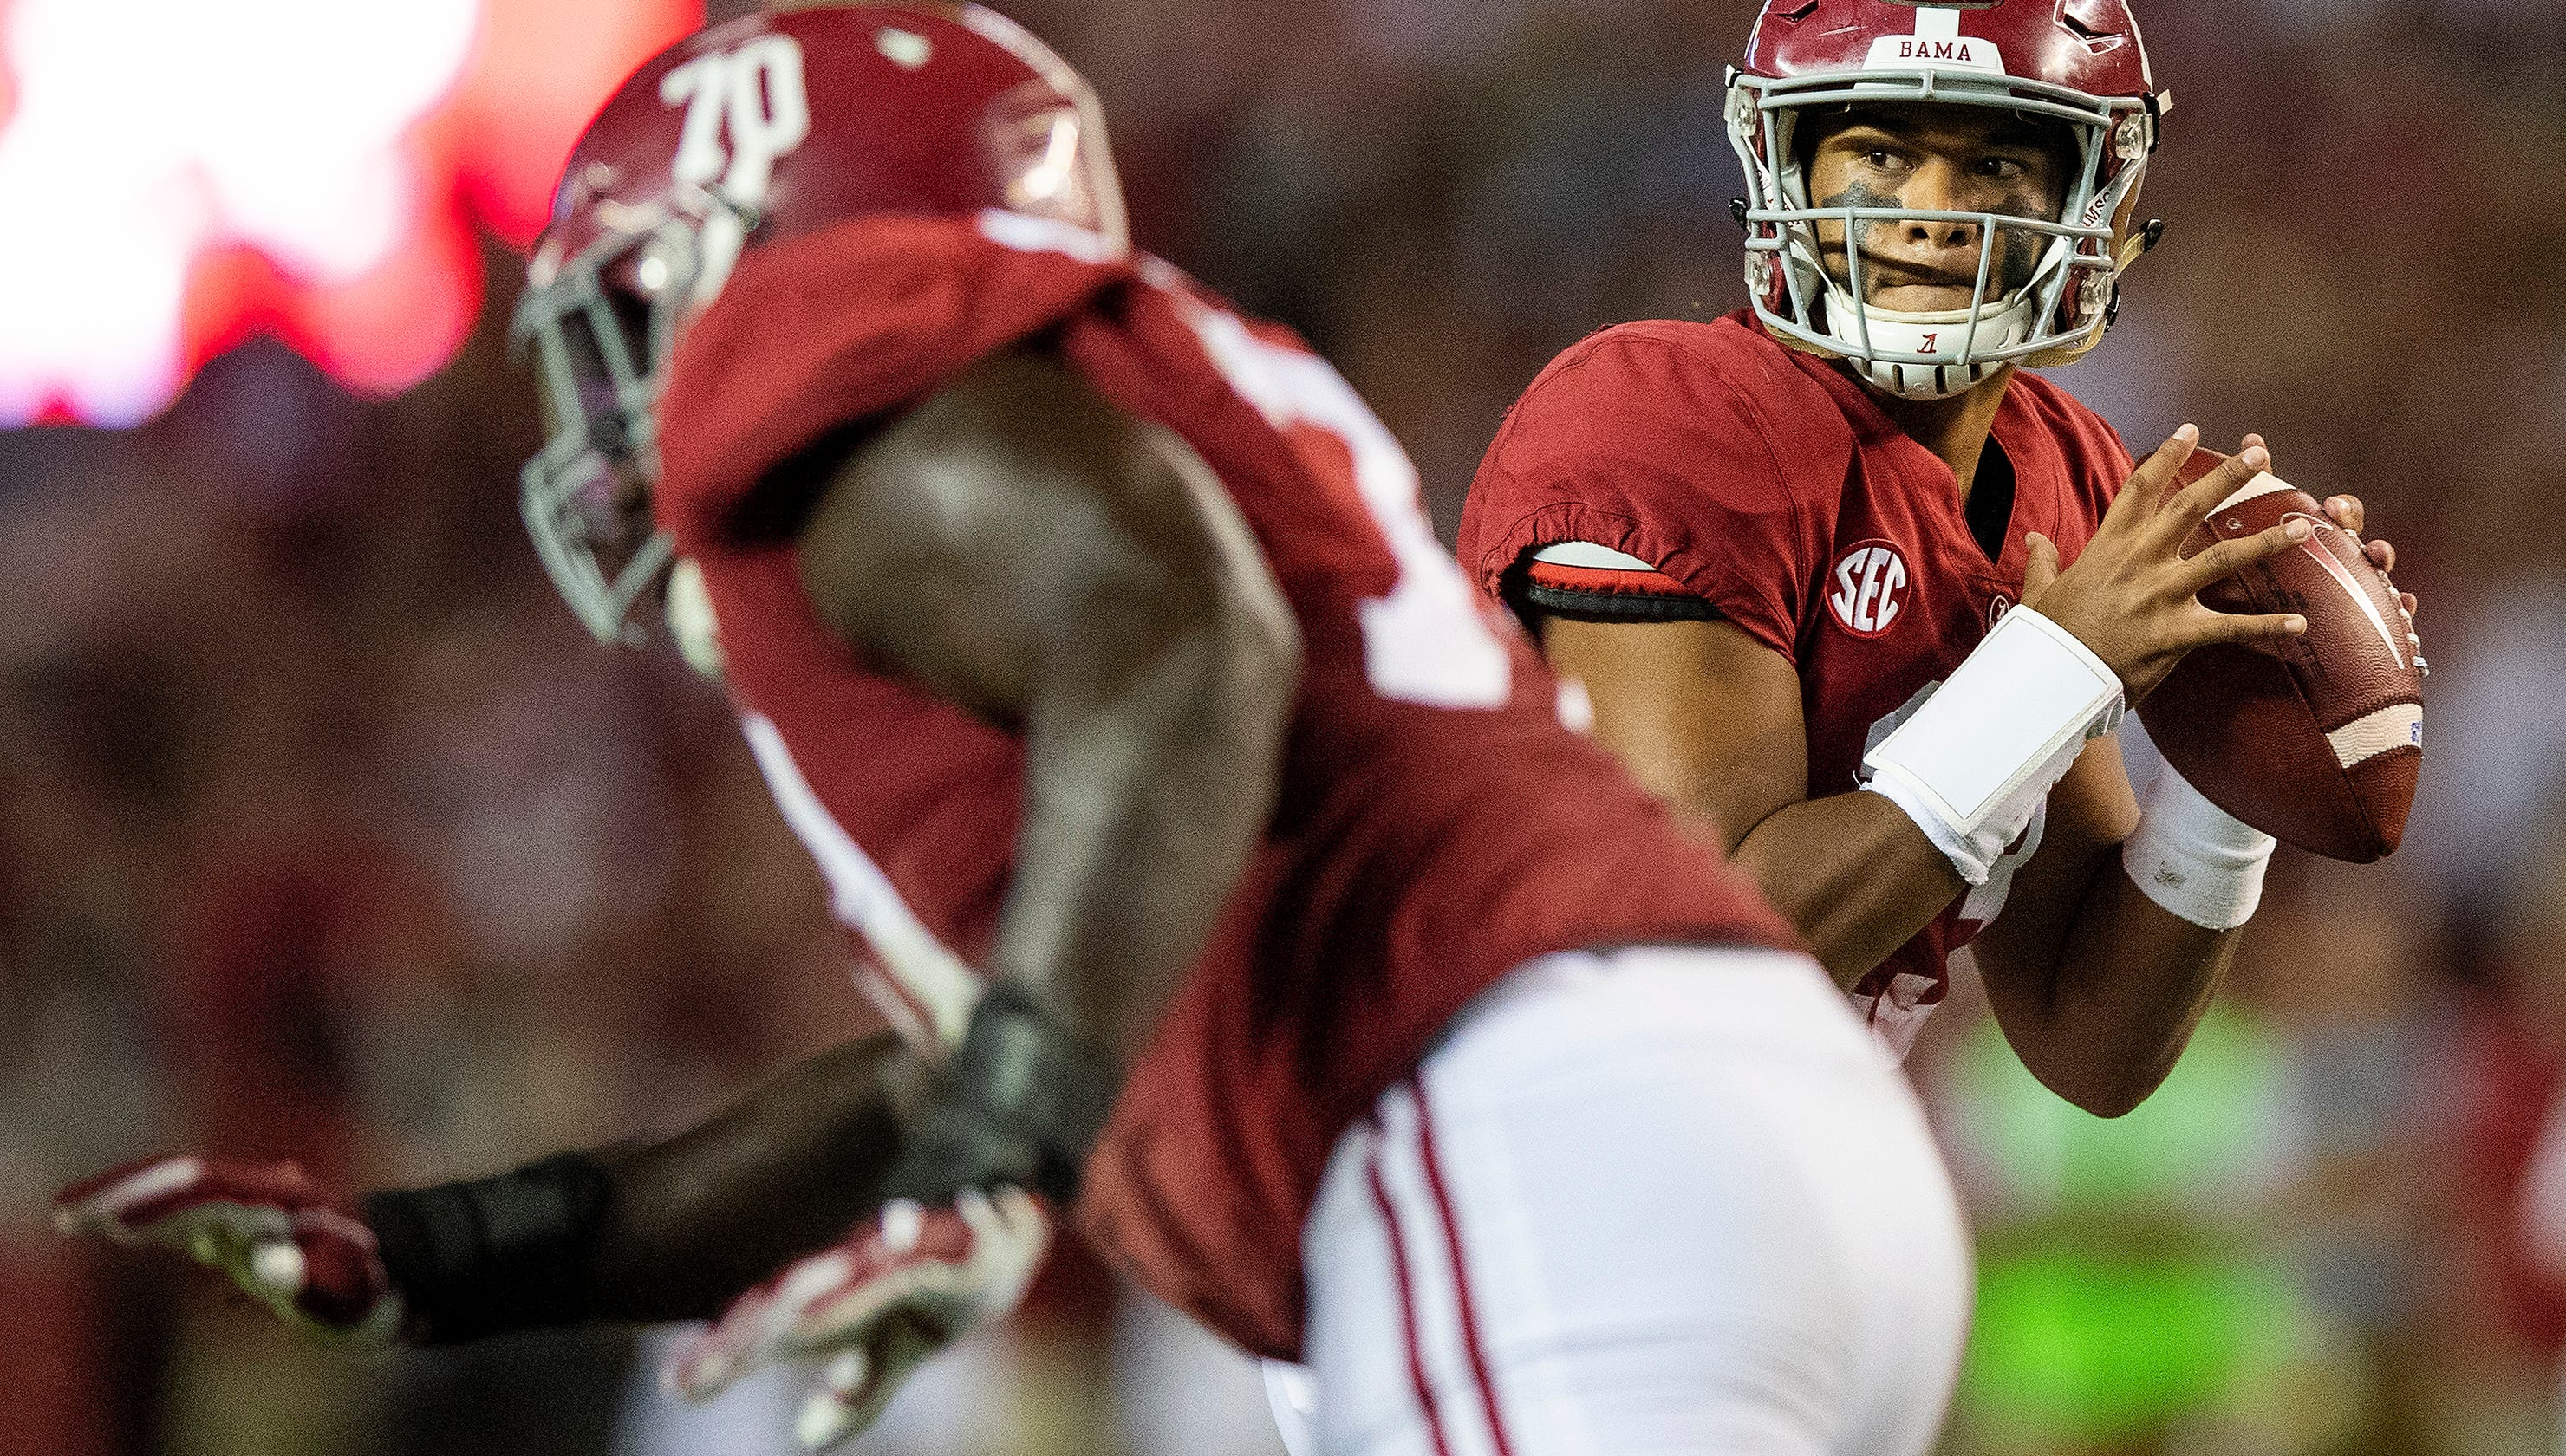 How to watch Alabama-LSU football: What is the game time ...